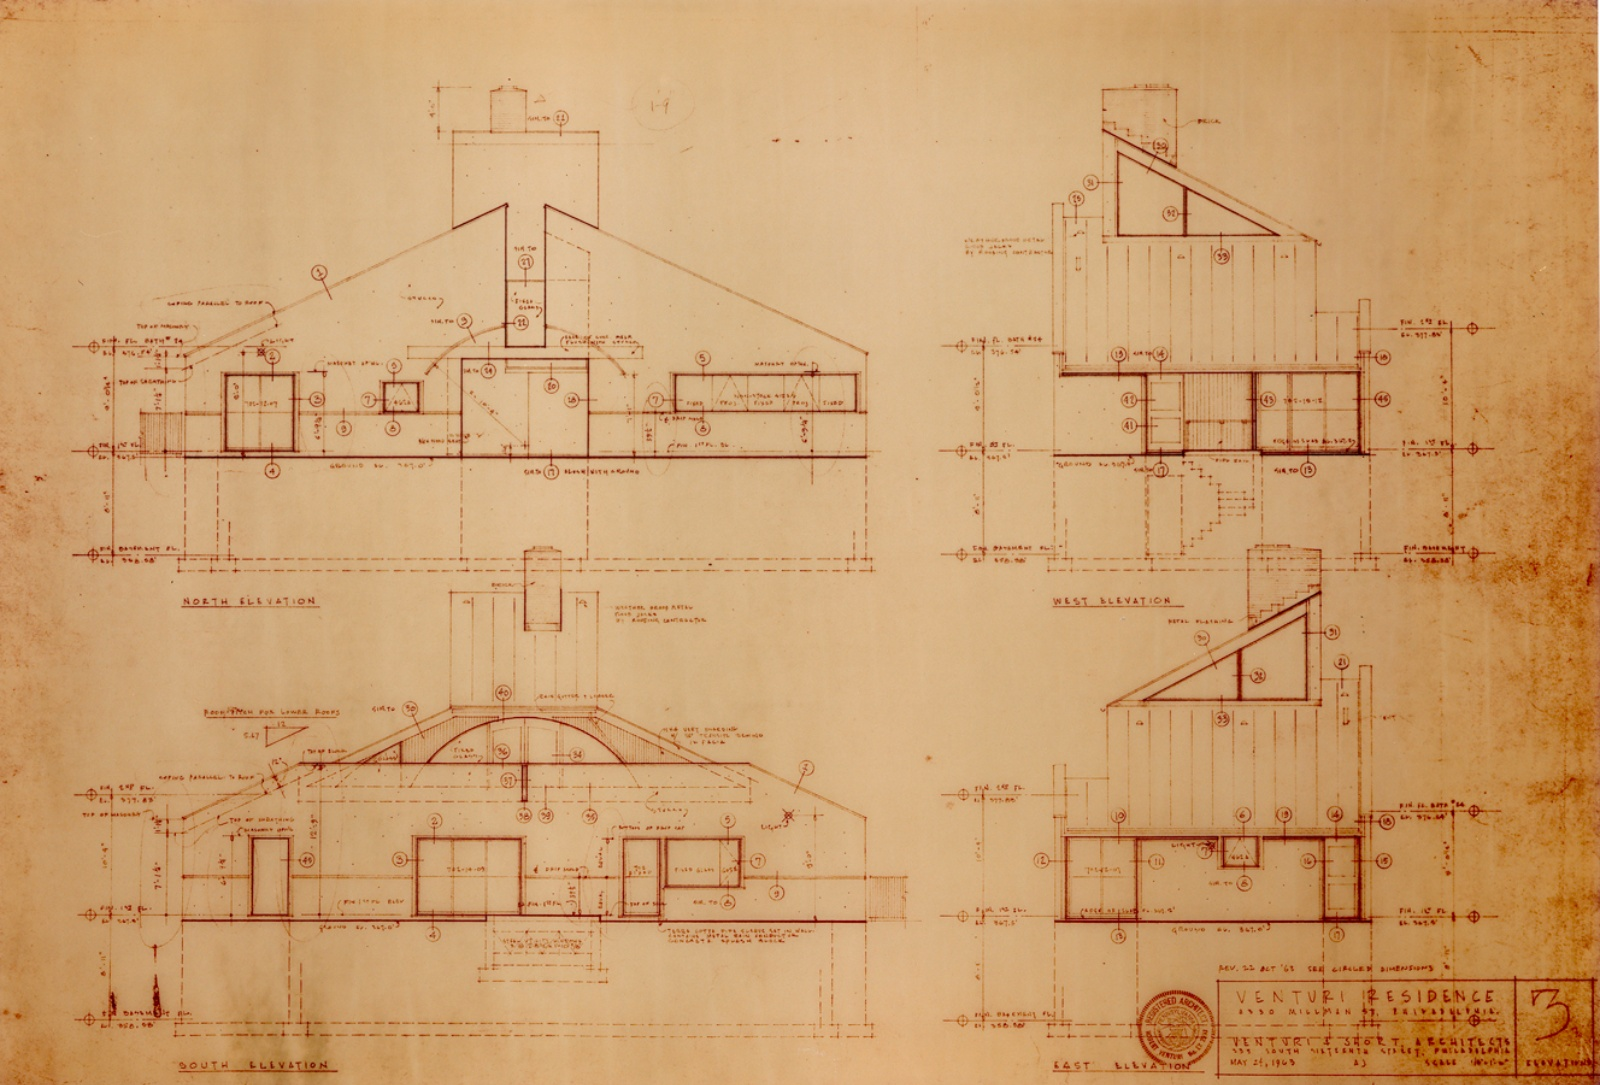 Vanna venturi house analysis images for Row house dimensions